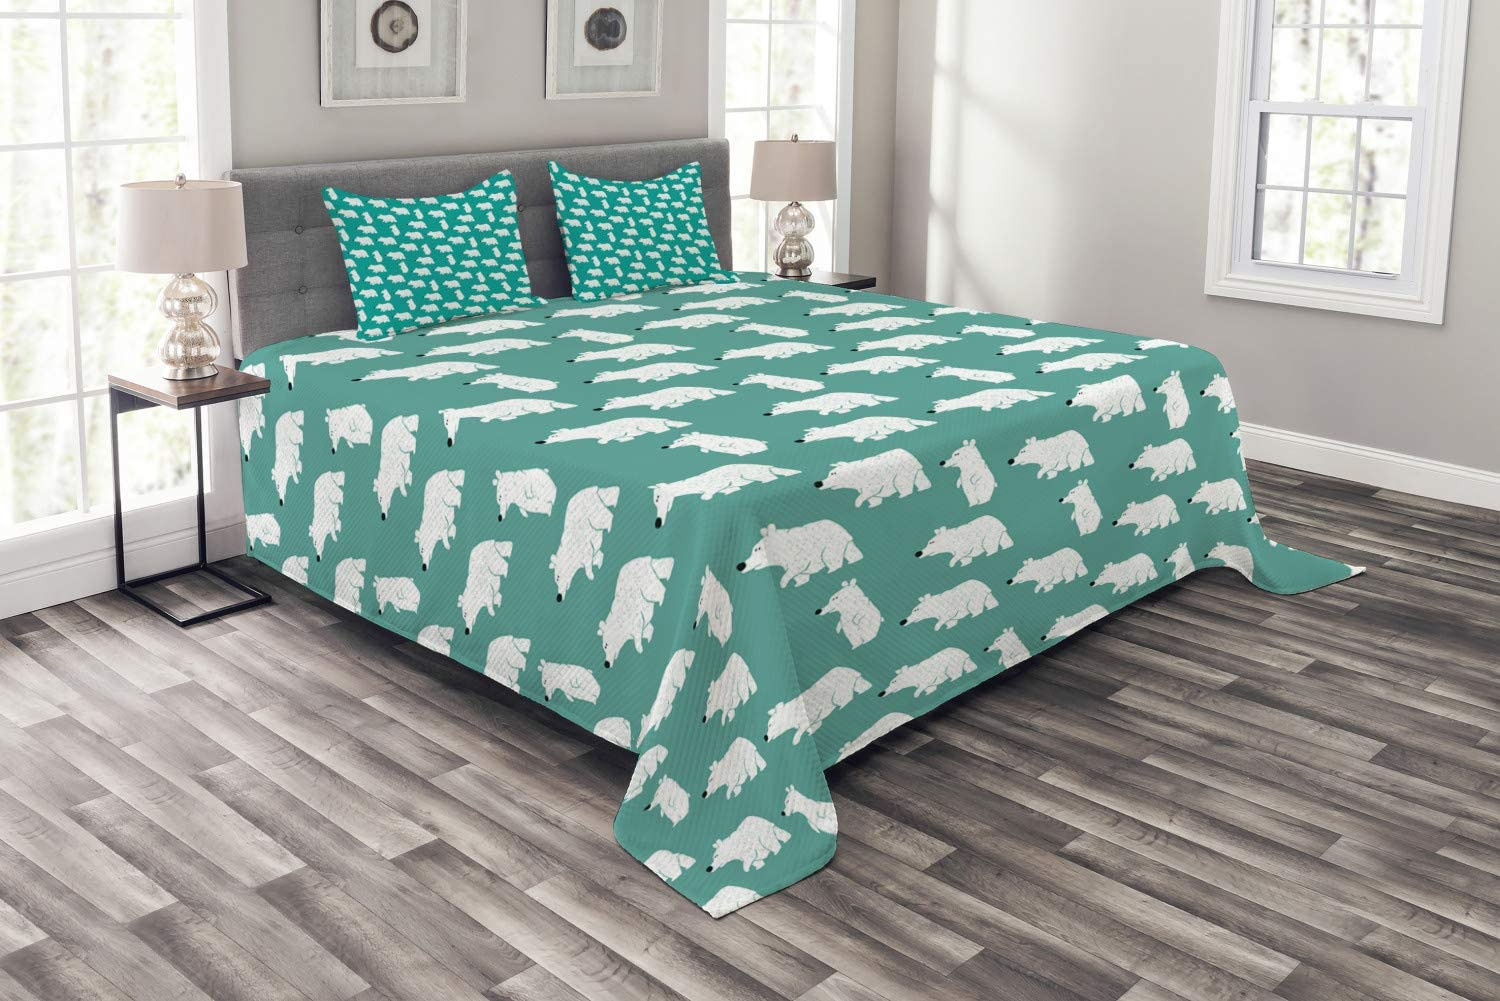 Ambesonne Bear Bedspread, Polar Bear in Various Funny Poses Arctic Circle Wild Nordic Illustration, Decorative Quilted 3 Piece Coverlet Set with 2 Pillow Shams, Queen Size, Teal White and Black